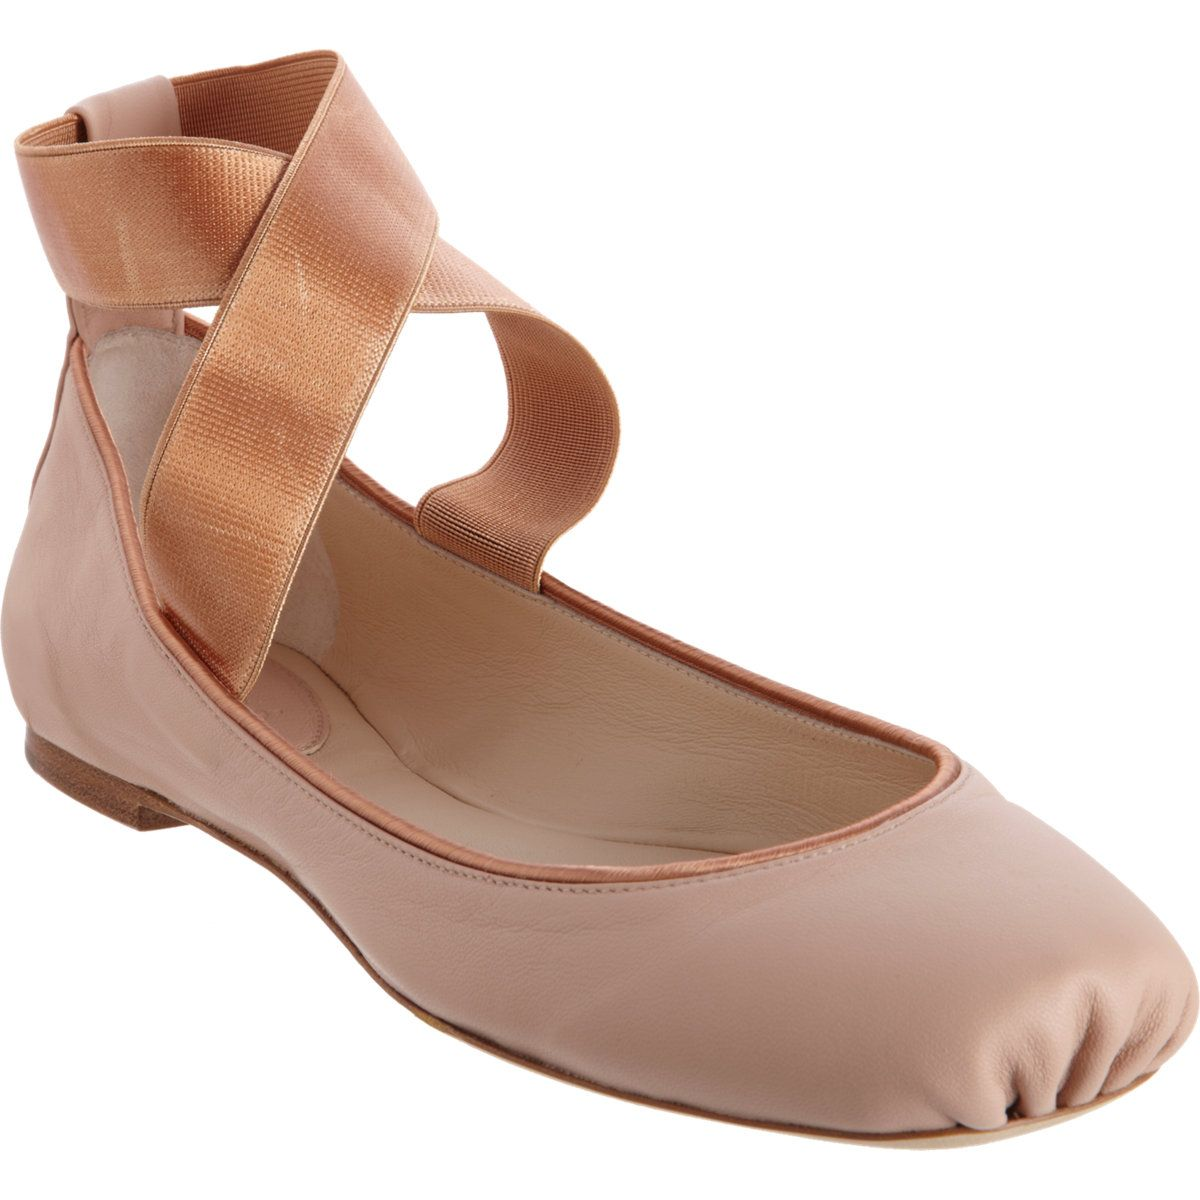 5b2151947c7 Chloé Criss-Cross Ankle Strap Ballet Flat with ruched